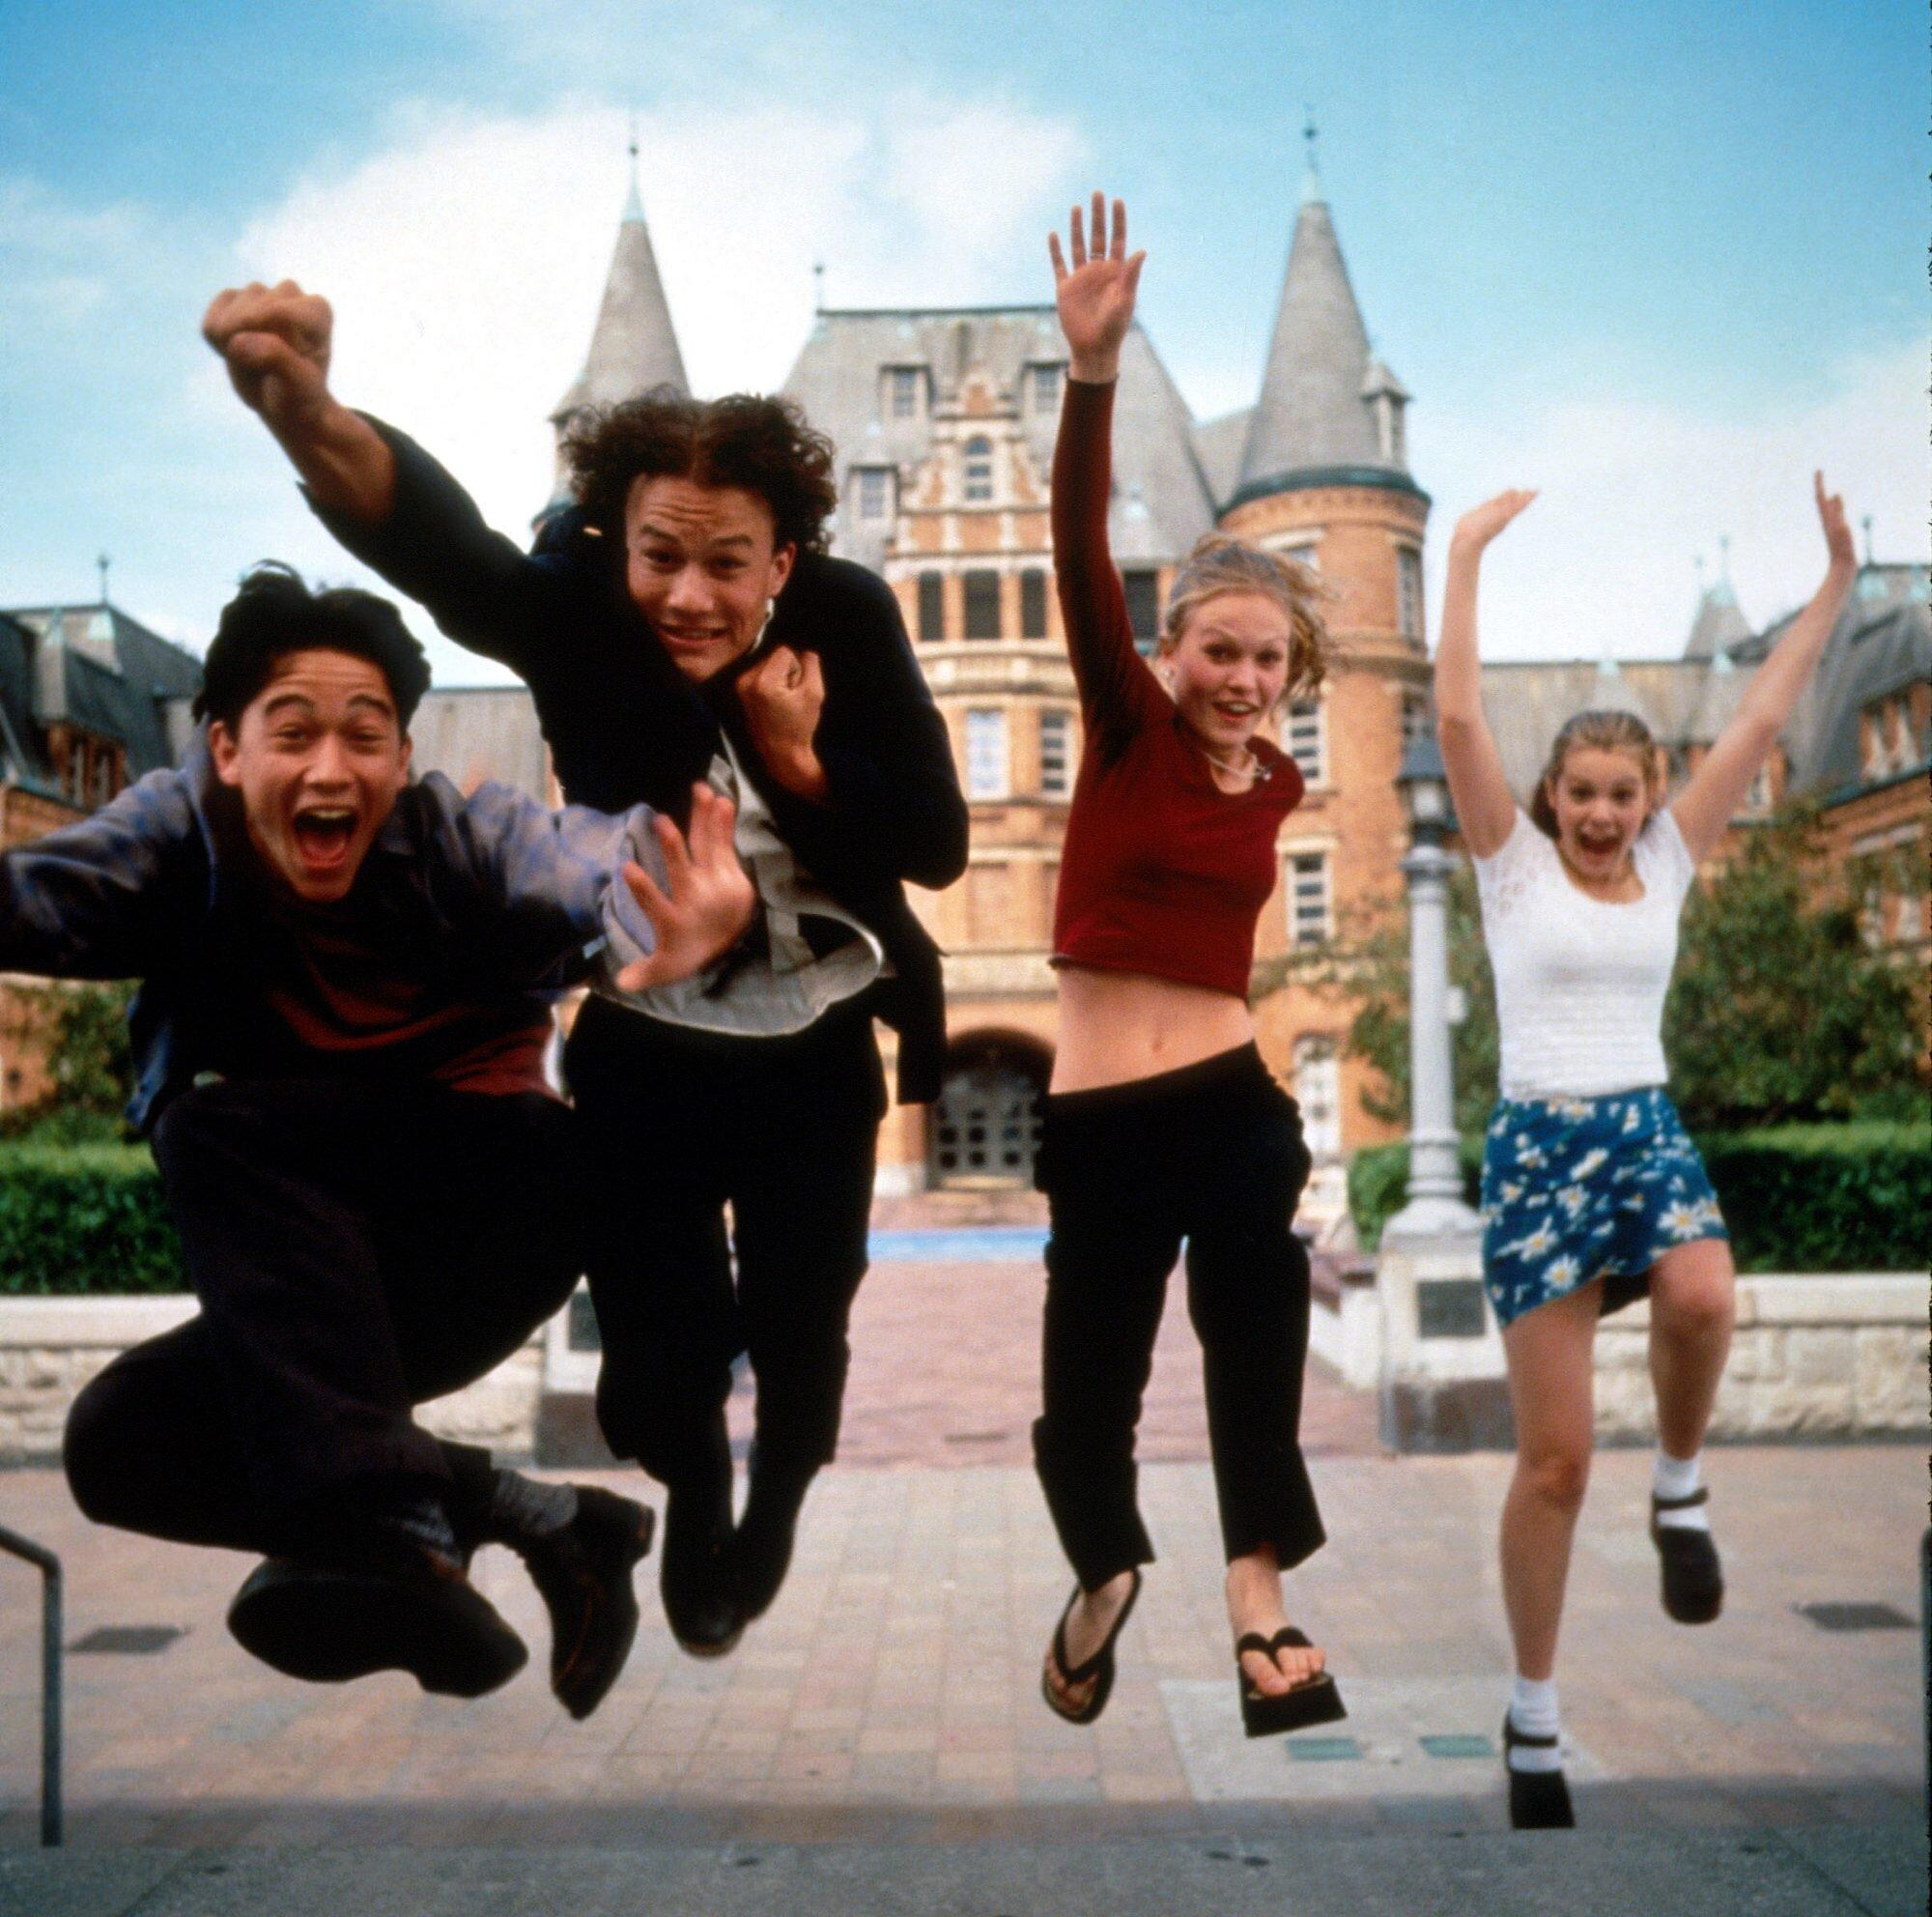 Joseph Gordon-Levitt Remembers 10 Things I Hate About You and Heath Ledger on Movie's Anniversary